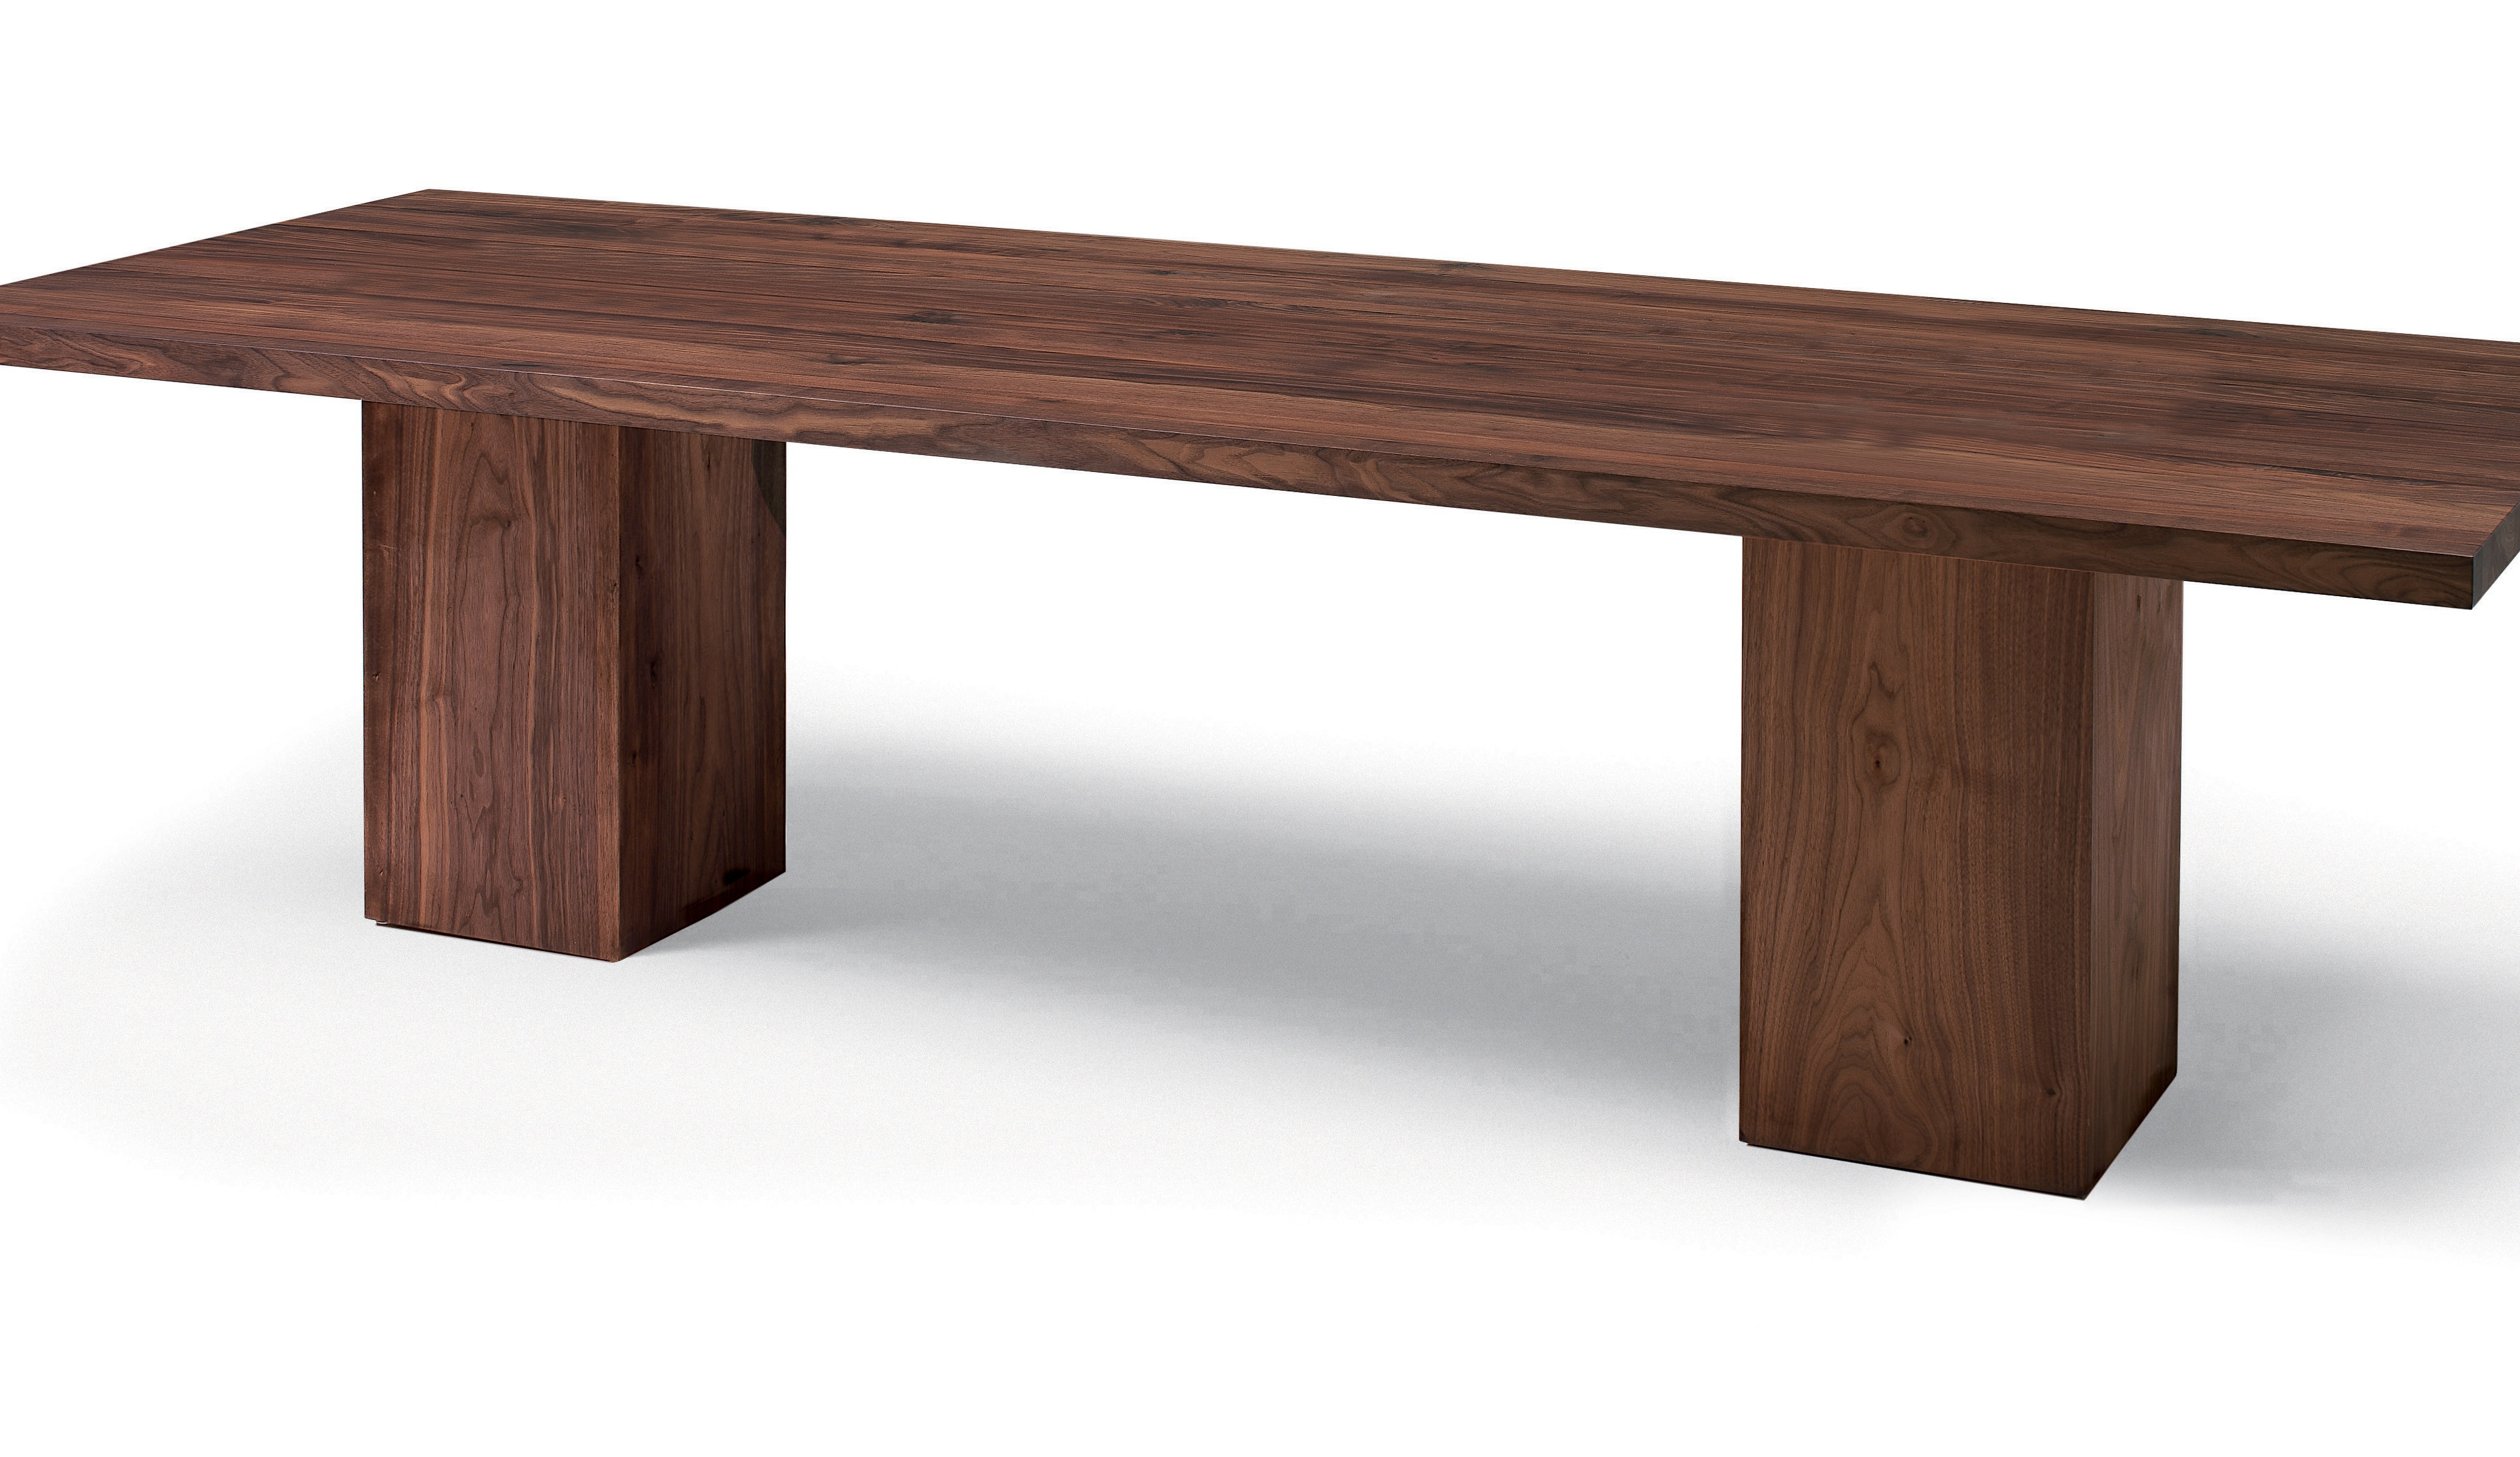 Dining table Bedrock Plank B, Riva 1920 - Luxury furniture MR